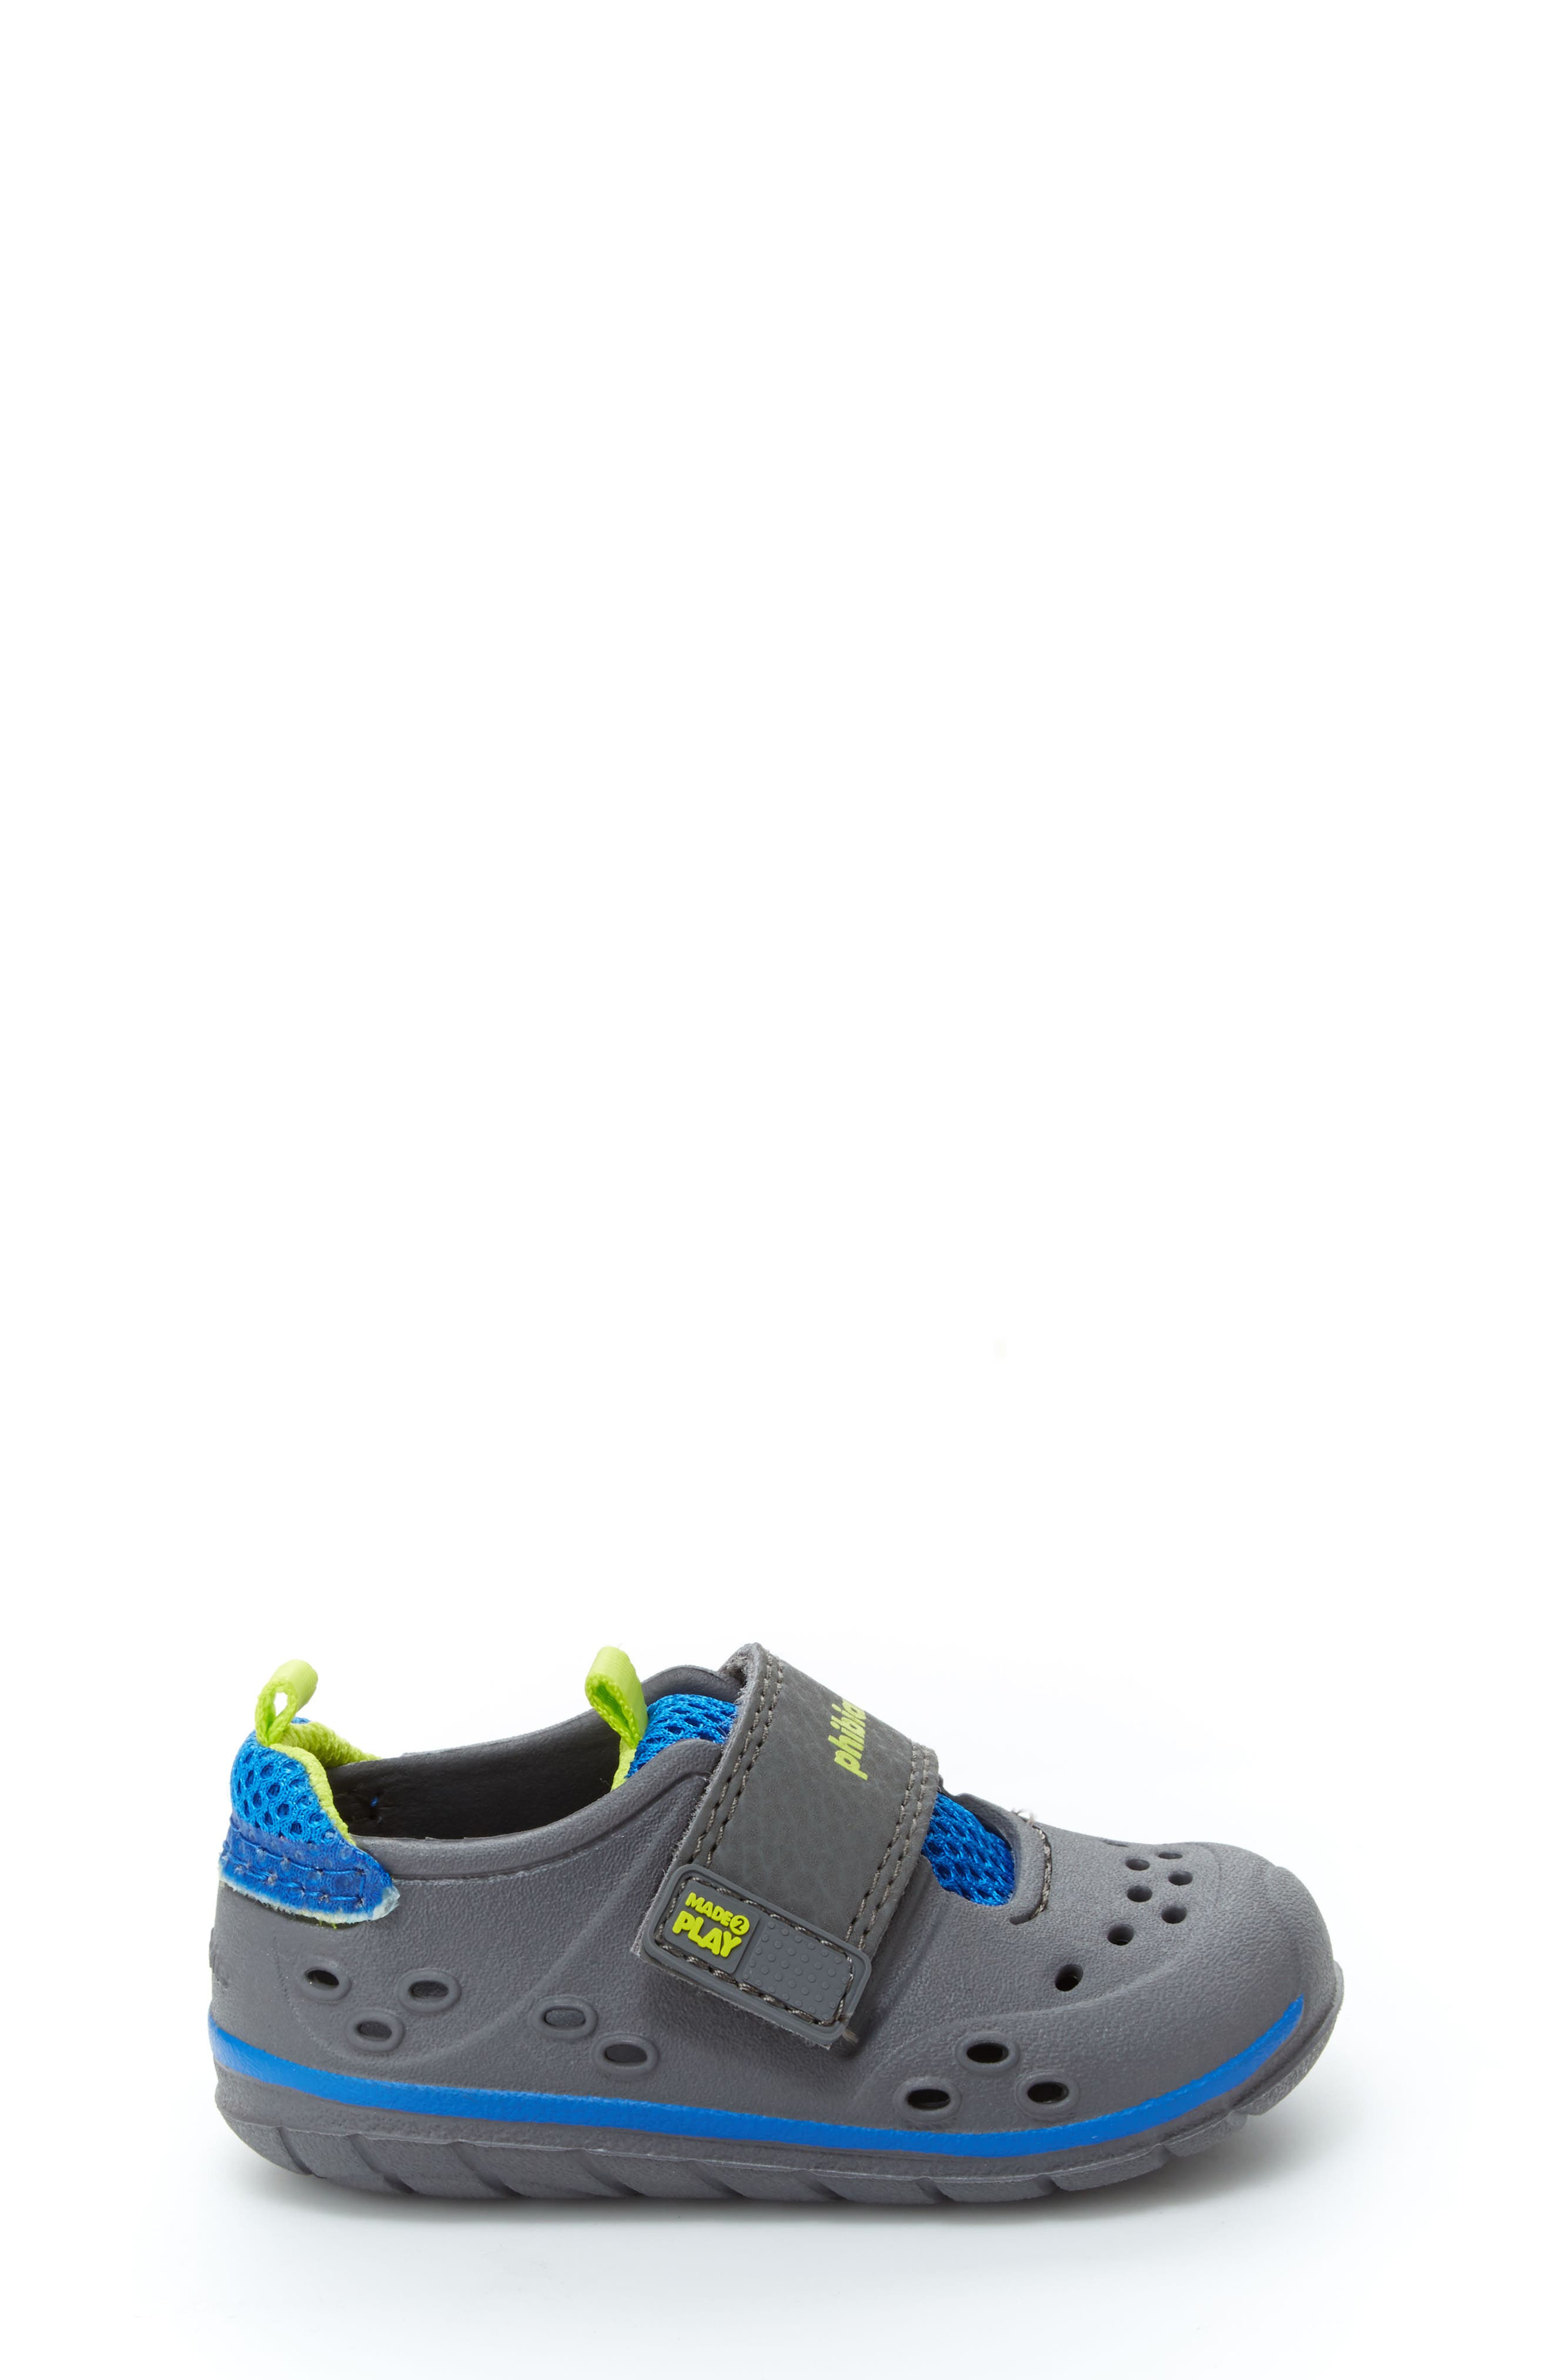 Made2Play<sup>®</sup> Phibian Sneaker,                             Alternate thumbnail 3, color,                             GREY/ GREY